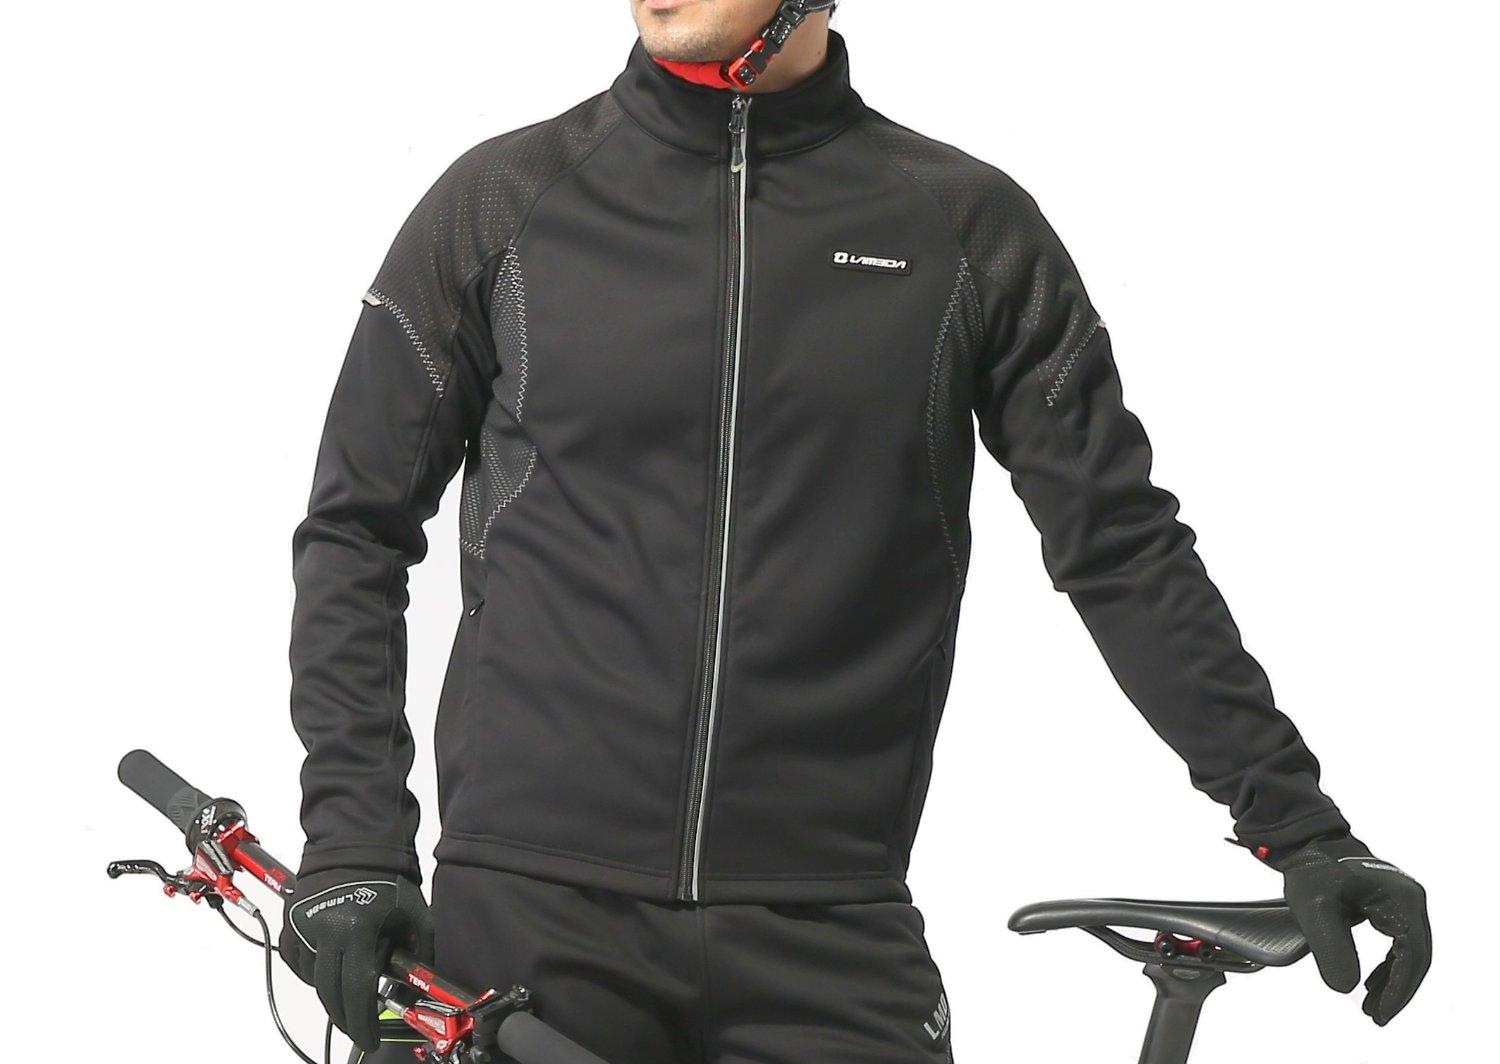 4ucycling Windproof Full Zip Wind Jacket